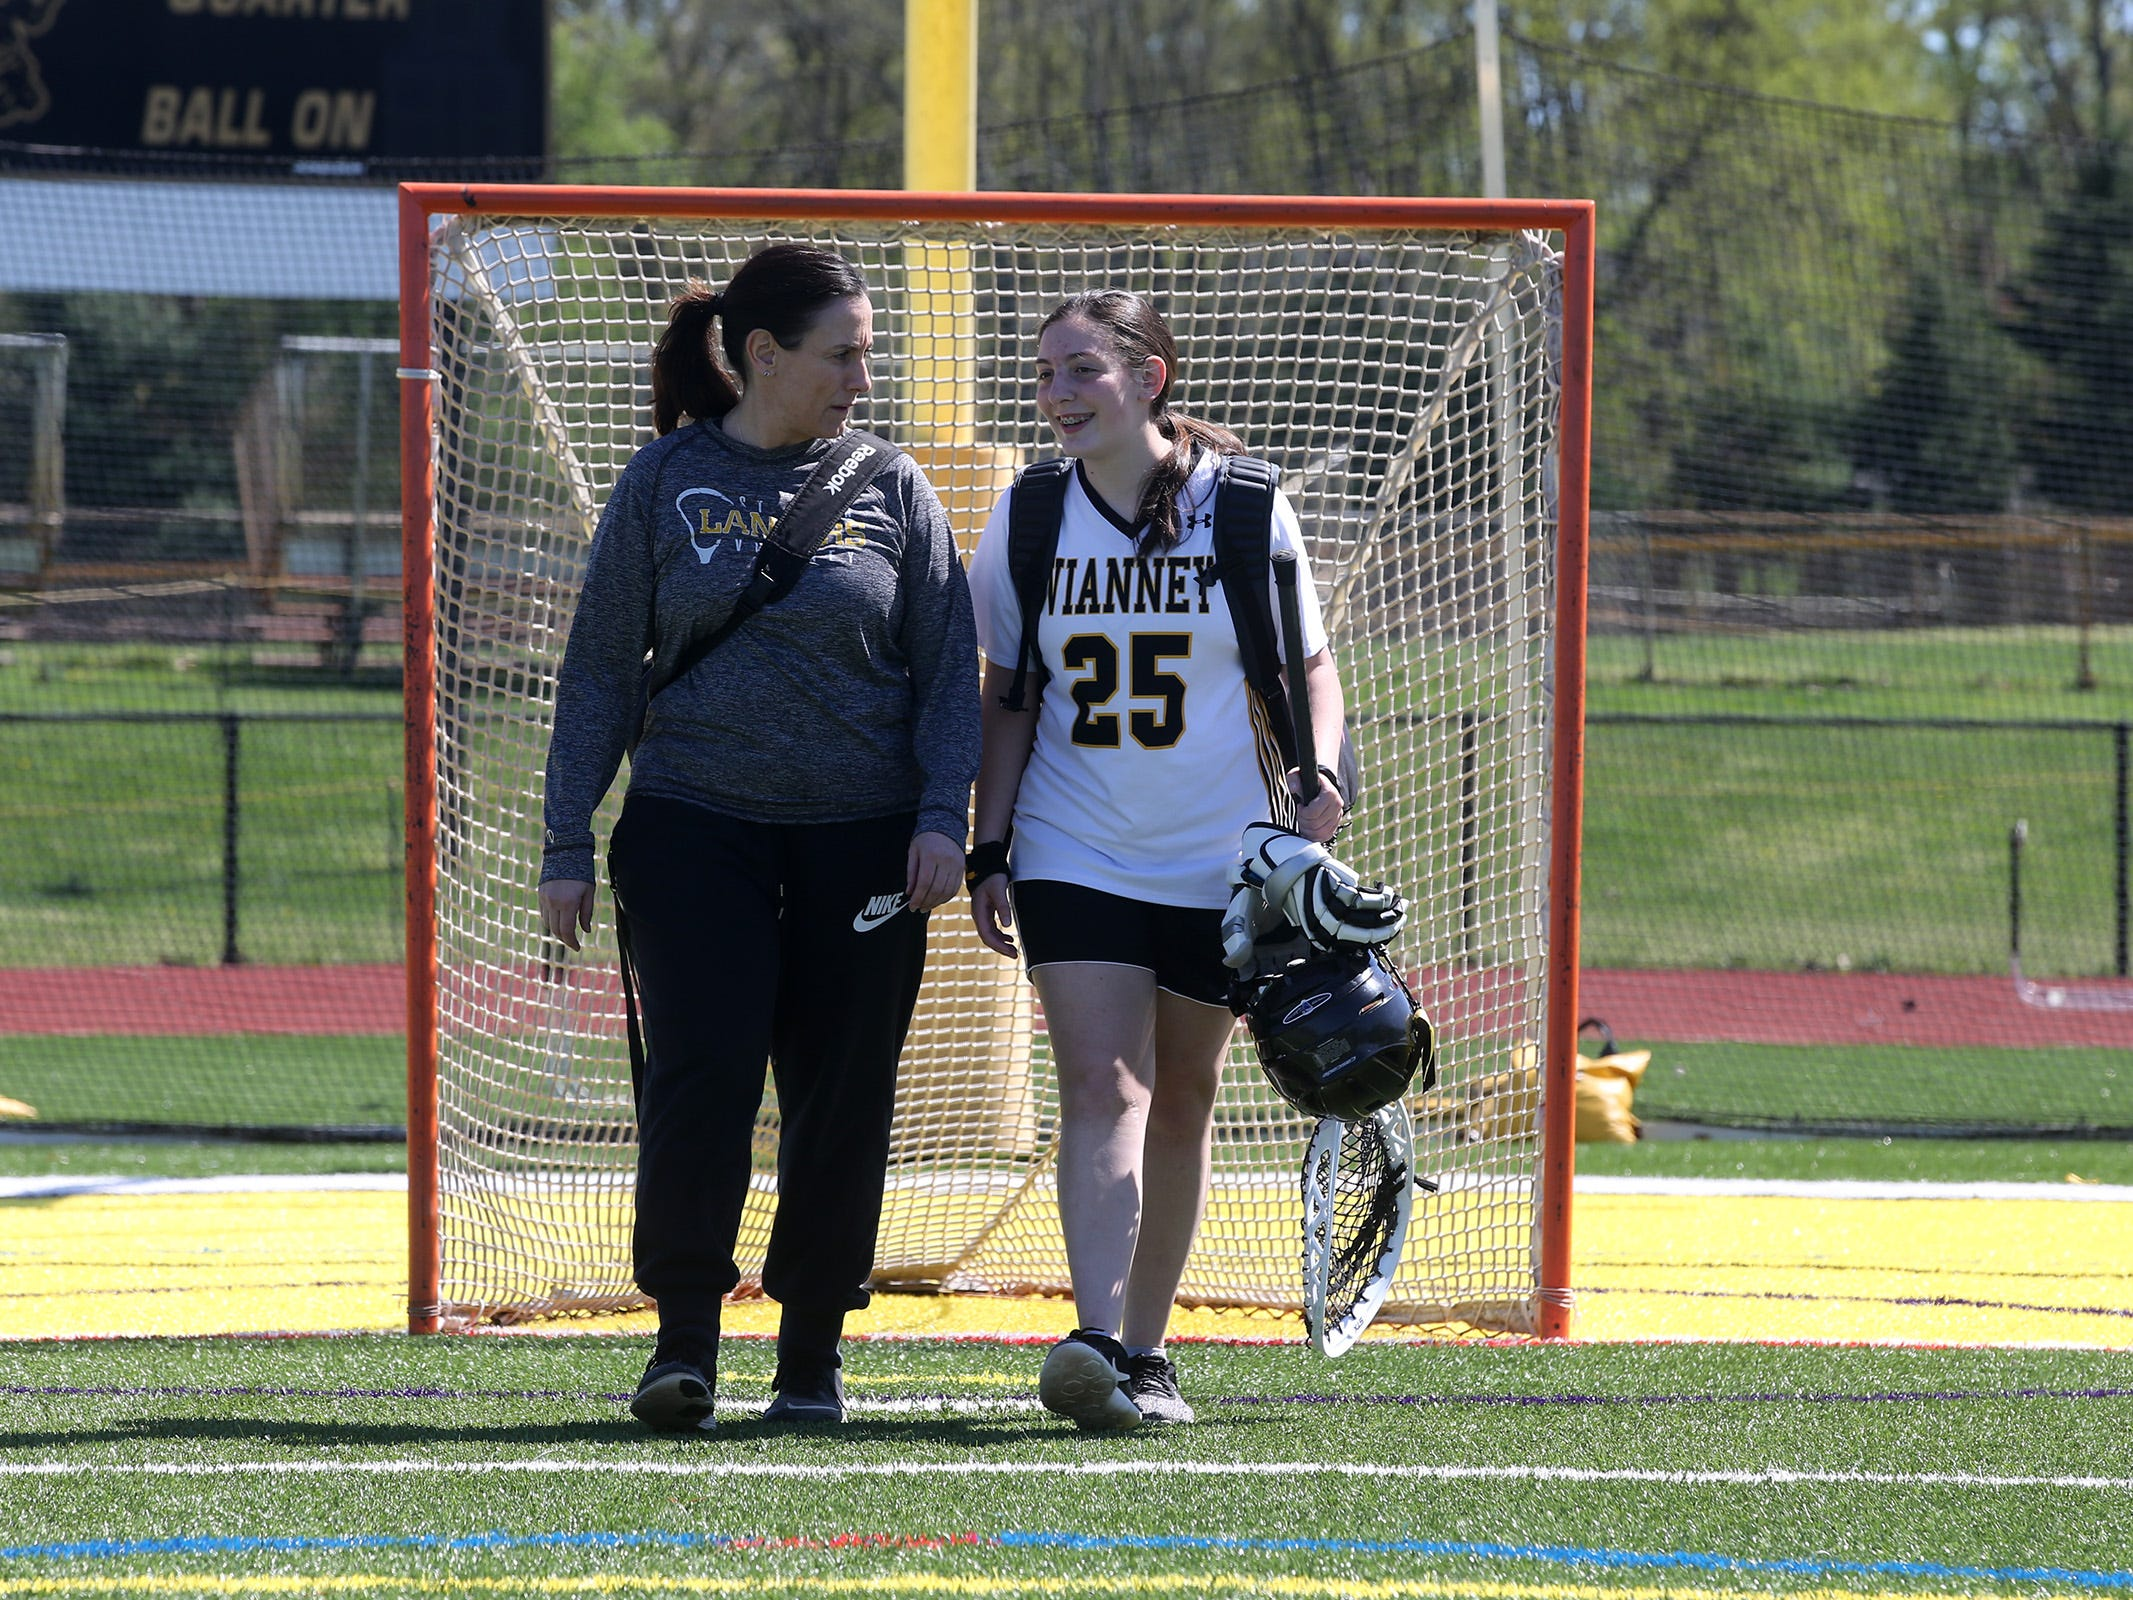 Teresa DiMezza, who is on a leave of absence from coaching the St. John Vianney girls lacrosse team, due to having a stroke late last year, walks with her daughter, Maddie, who is the goalie for the team, before a game against Neptune at St. John Vianney High School in Holmdel, NJ Wednesday, April 24, 2019.